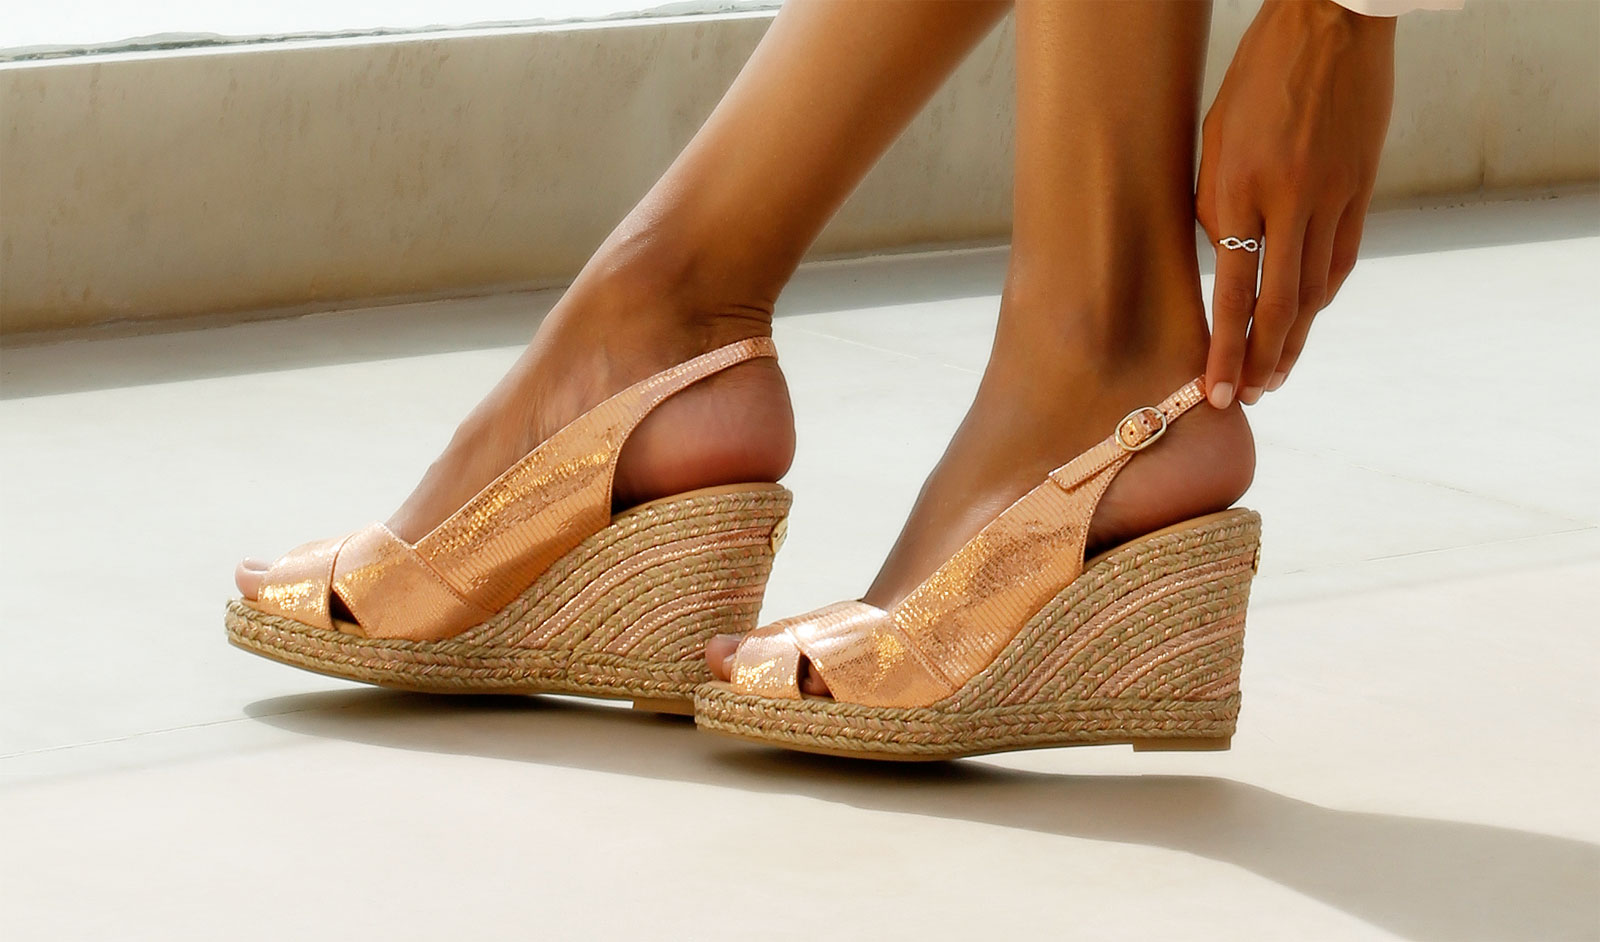 Zaccys classic rustic shoe with ankle strap